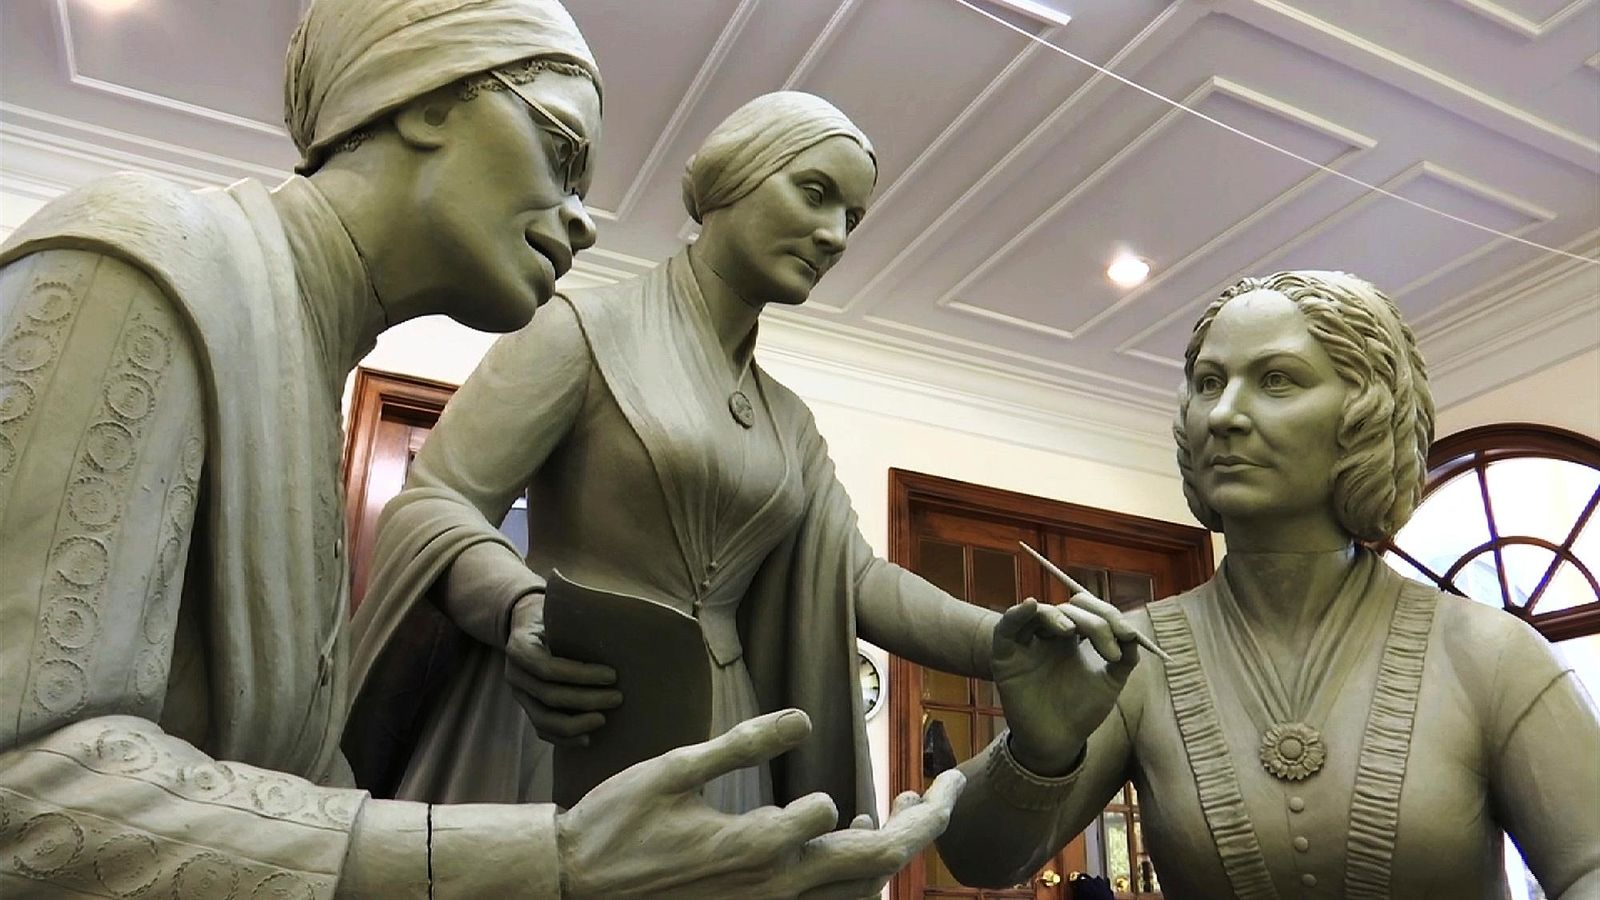 This Nov. 4, 2019, still image from video shows a portion of the first women's statue that will be installed in New York's Central Park, as it is being created by sculptor Meredith Bergmann in her studio in Ridgefield, Conn.{ } (AP Photo/Joseph Frederick)